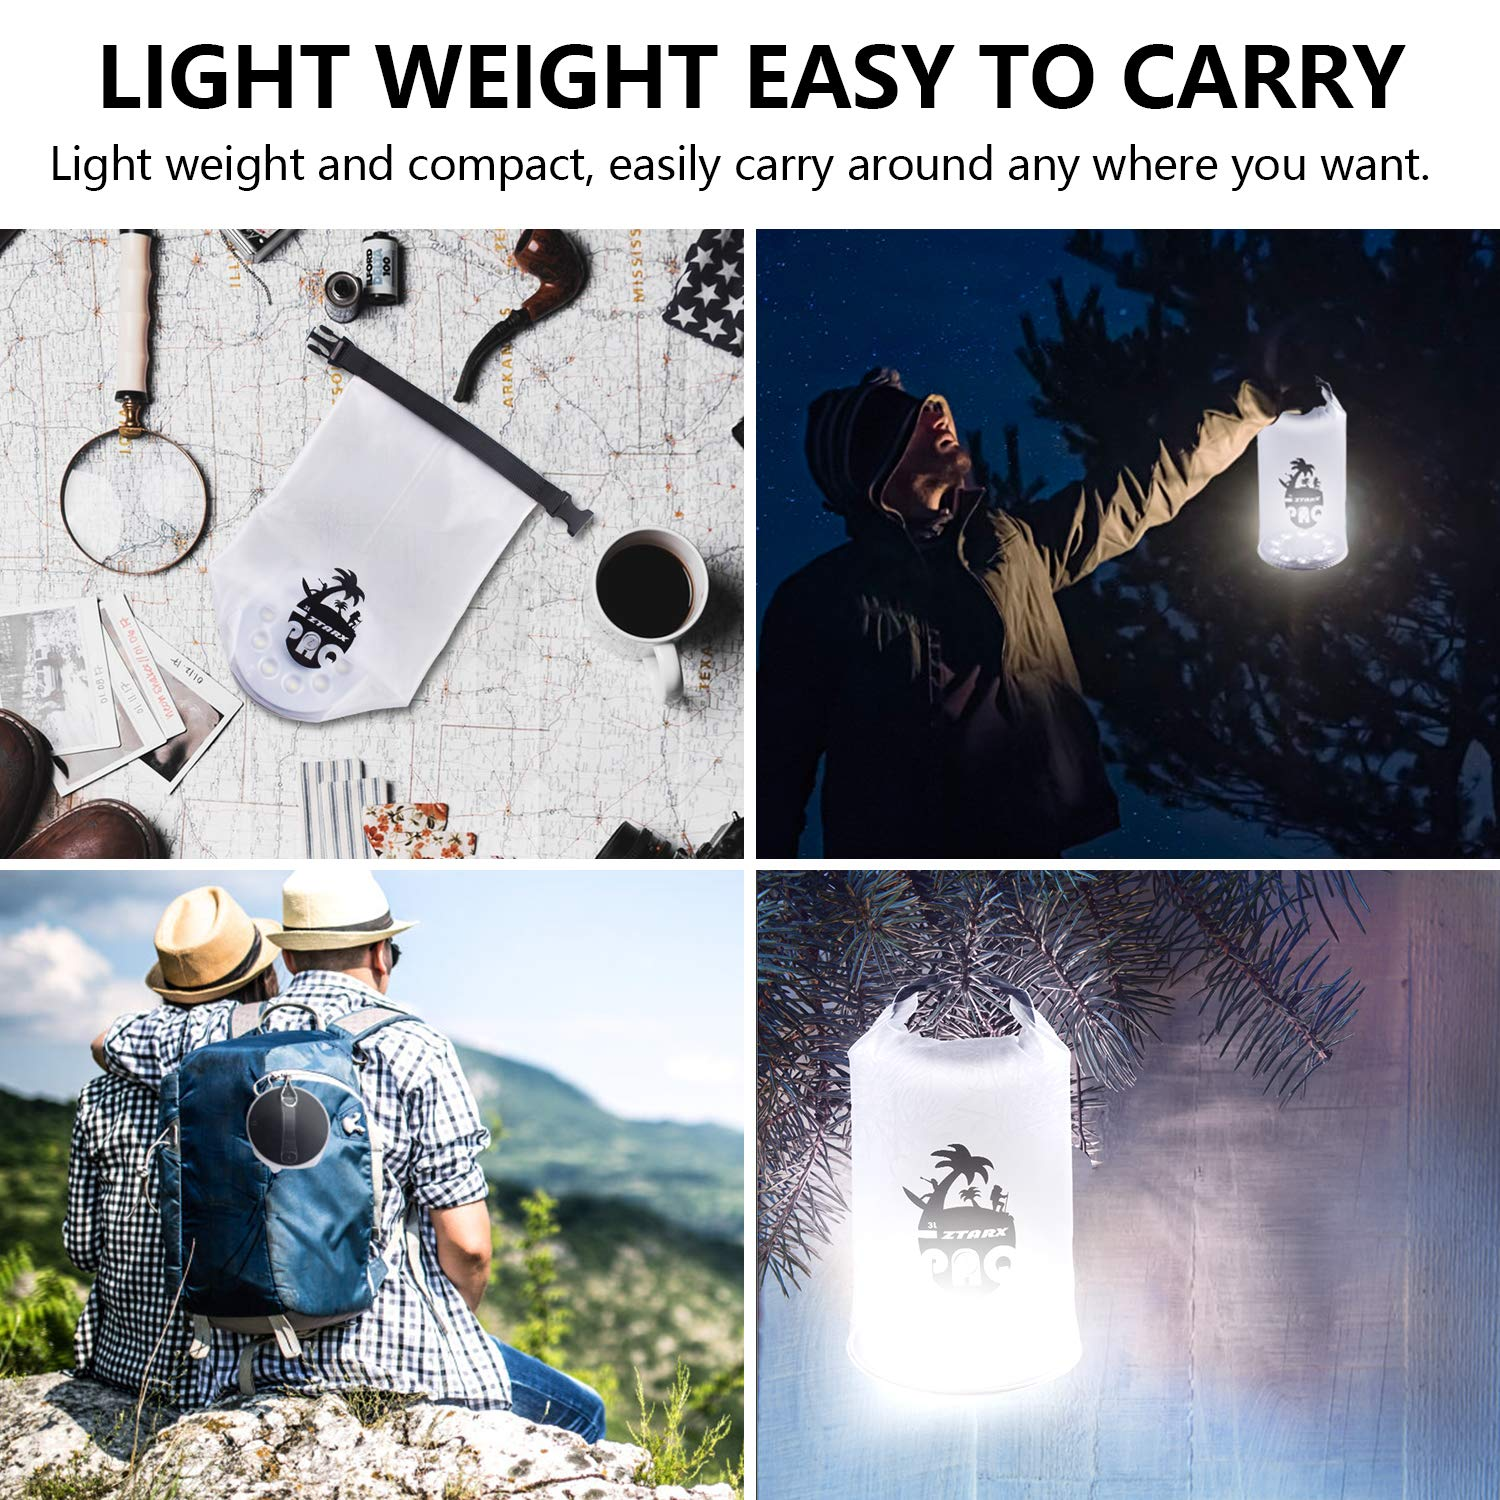 Hiking 4 Lighting Model LED Outdoor Lights for Camping Kayak Hurricane Emergency AIDIER Solar Camping Lantern Camping Light Waterproof IP66 With Dry Bag Function Roll Top Snap Lock Handle Outage